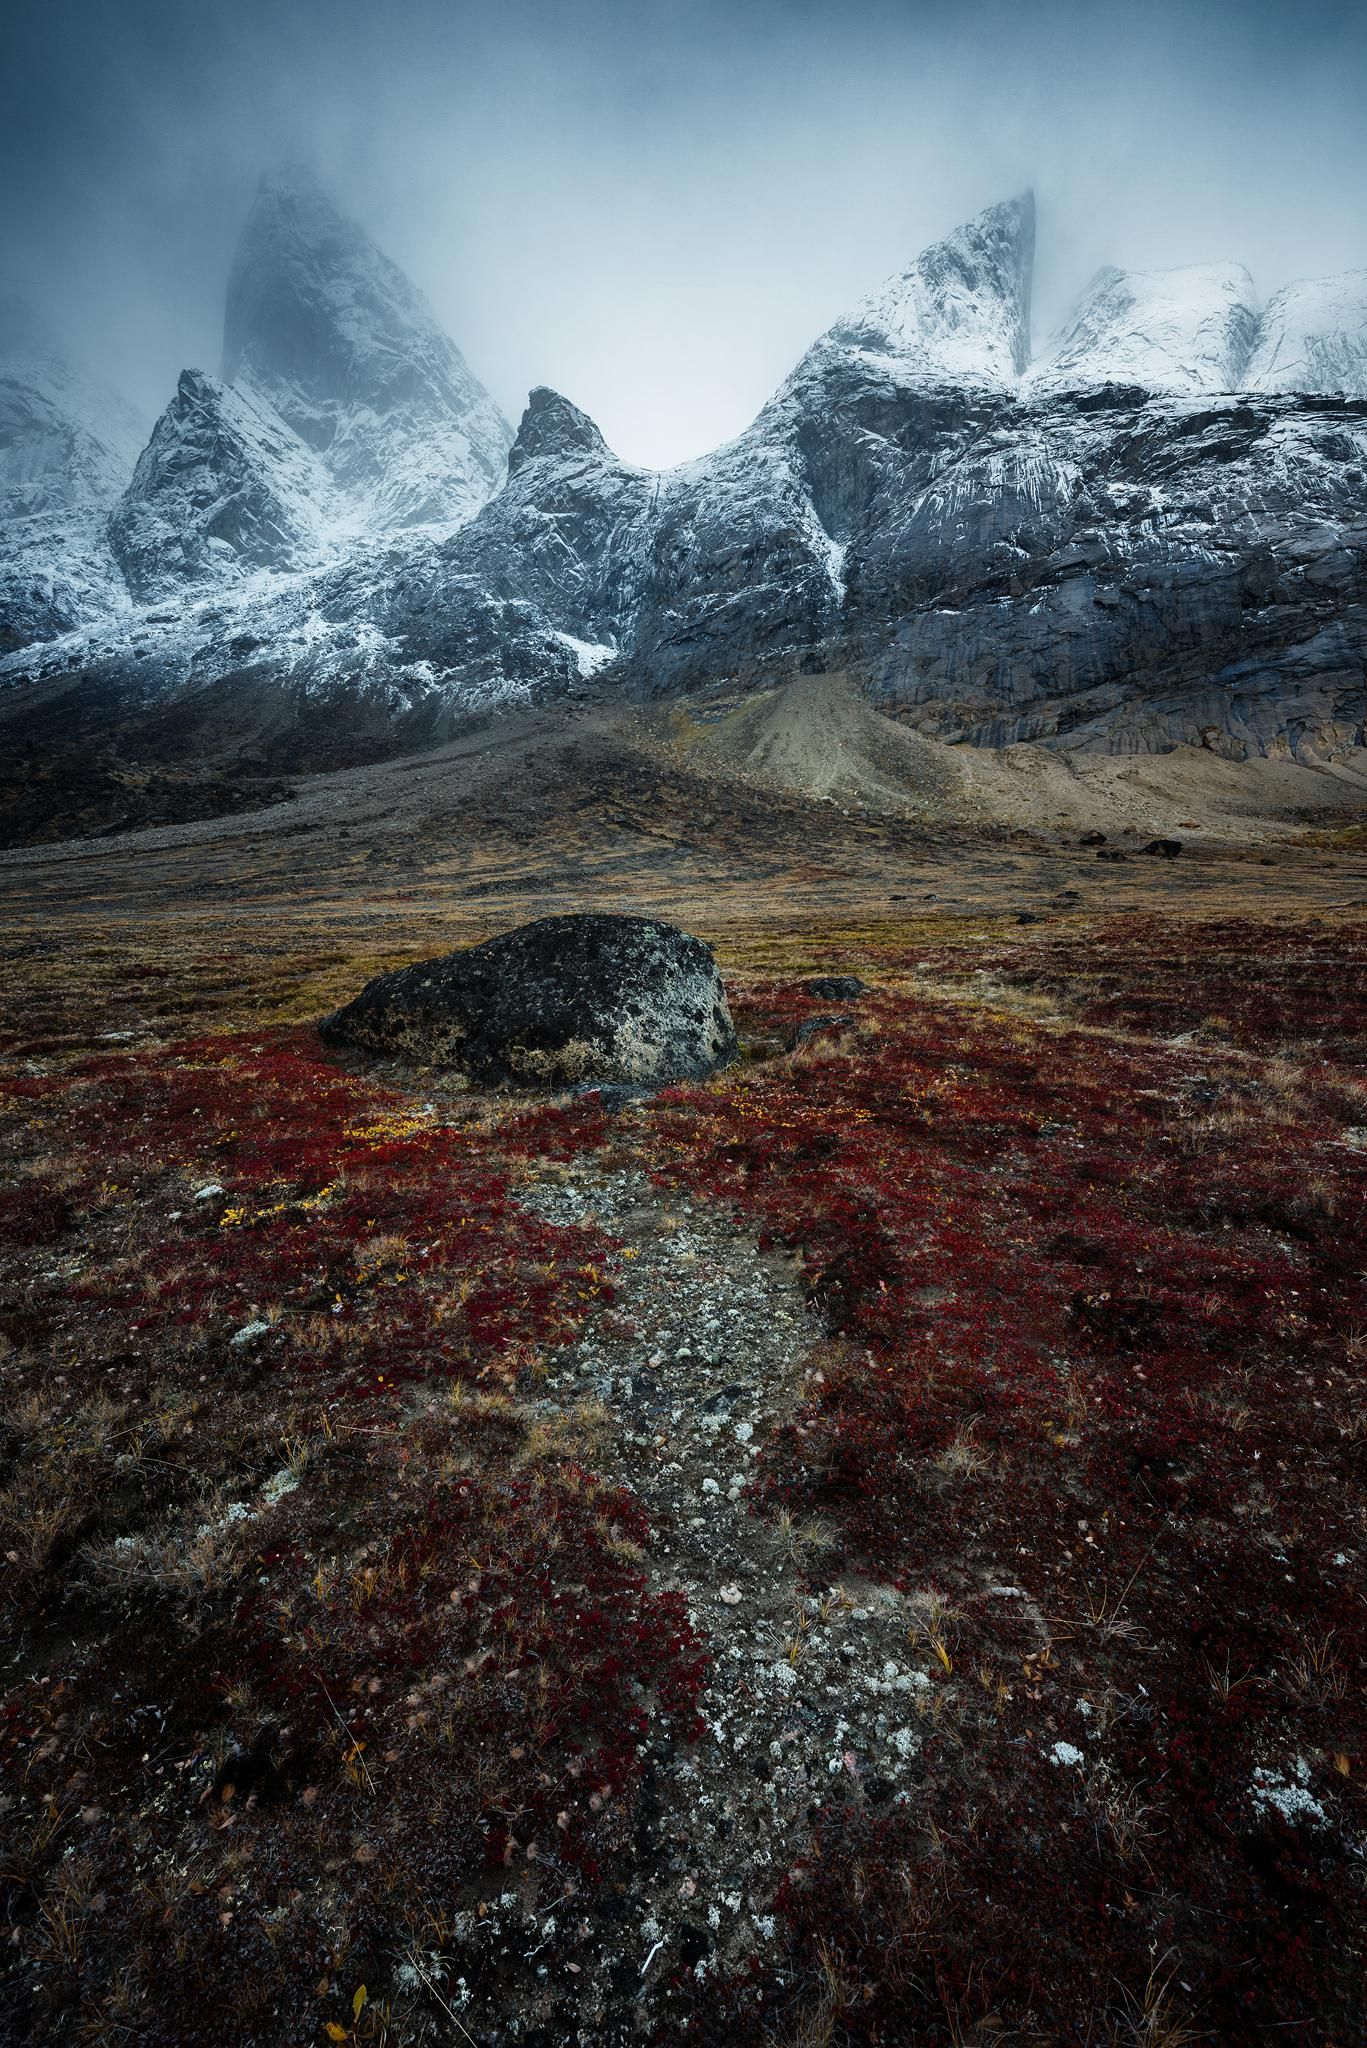 Two Insane Peaks Dusting Of Snow In Arctic - Baffin Island Nu Ca Oc